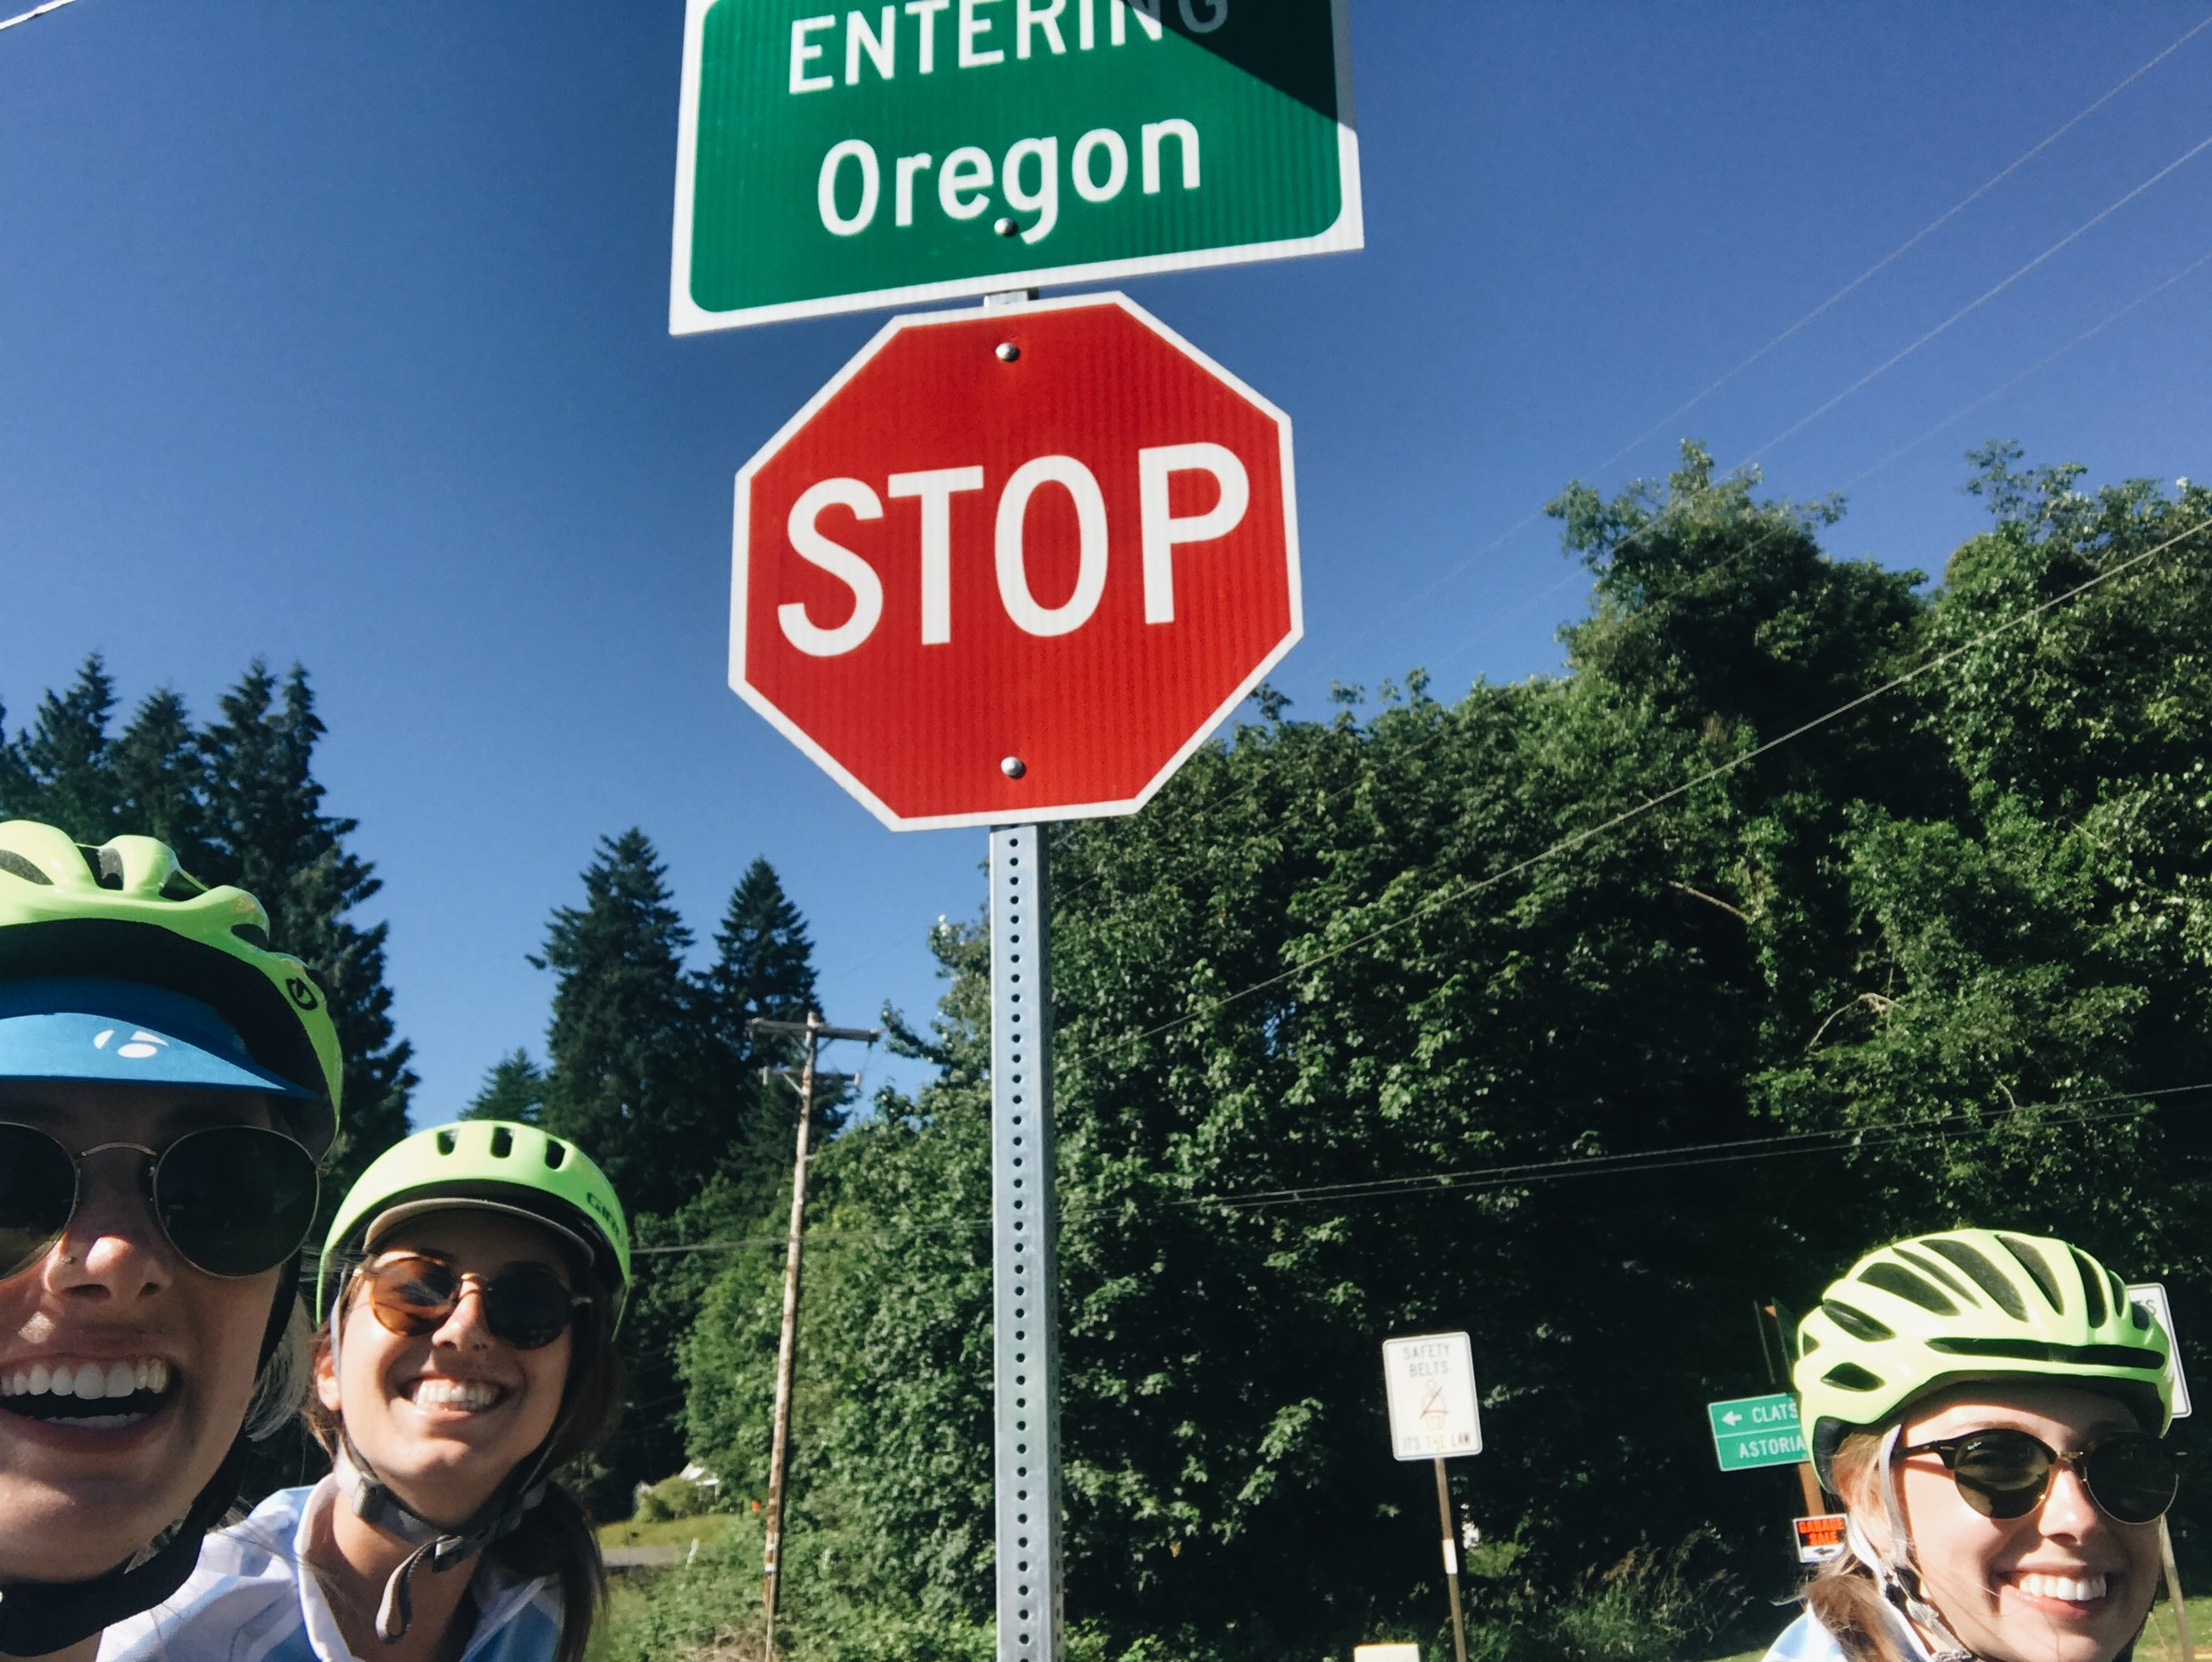 A very anti-climactic sign, but happy to be in OREGON!!!!!